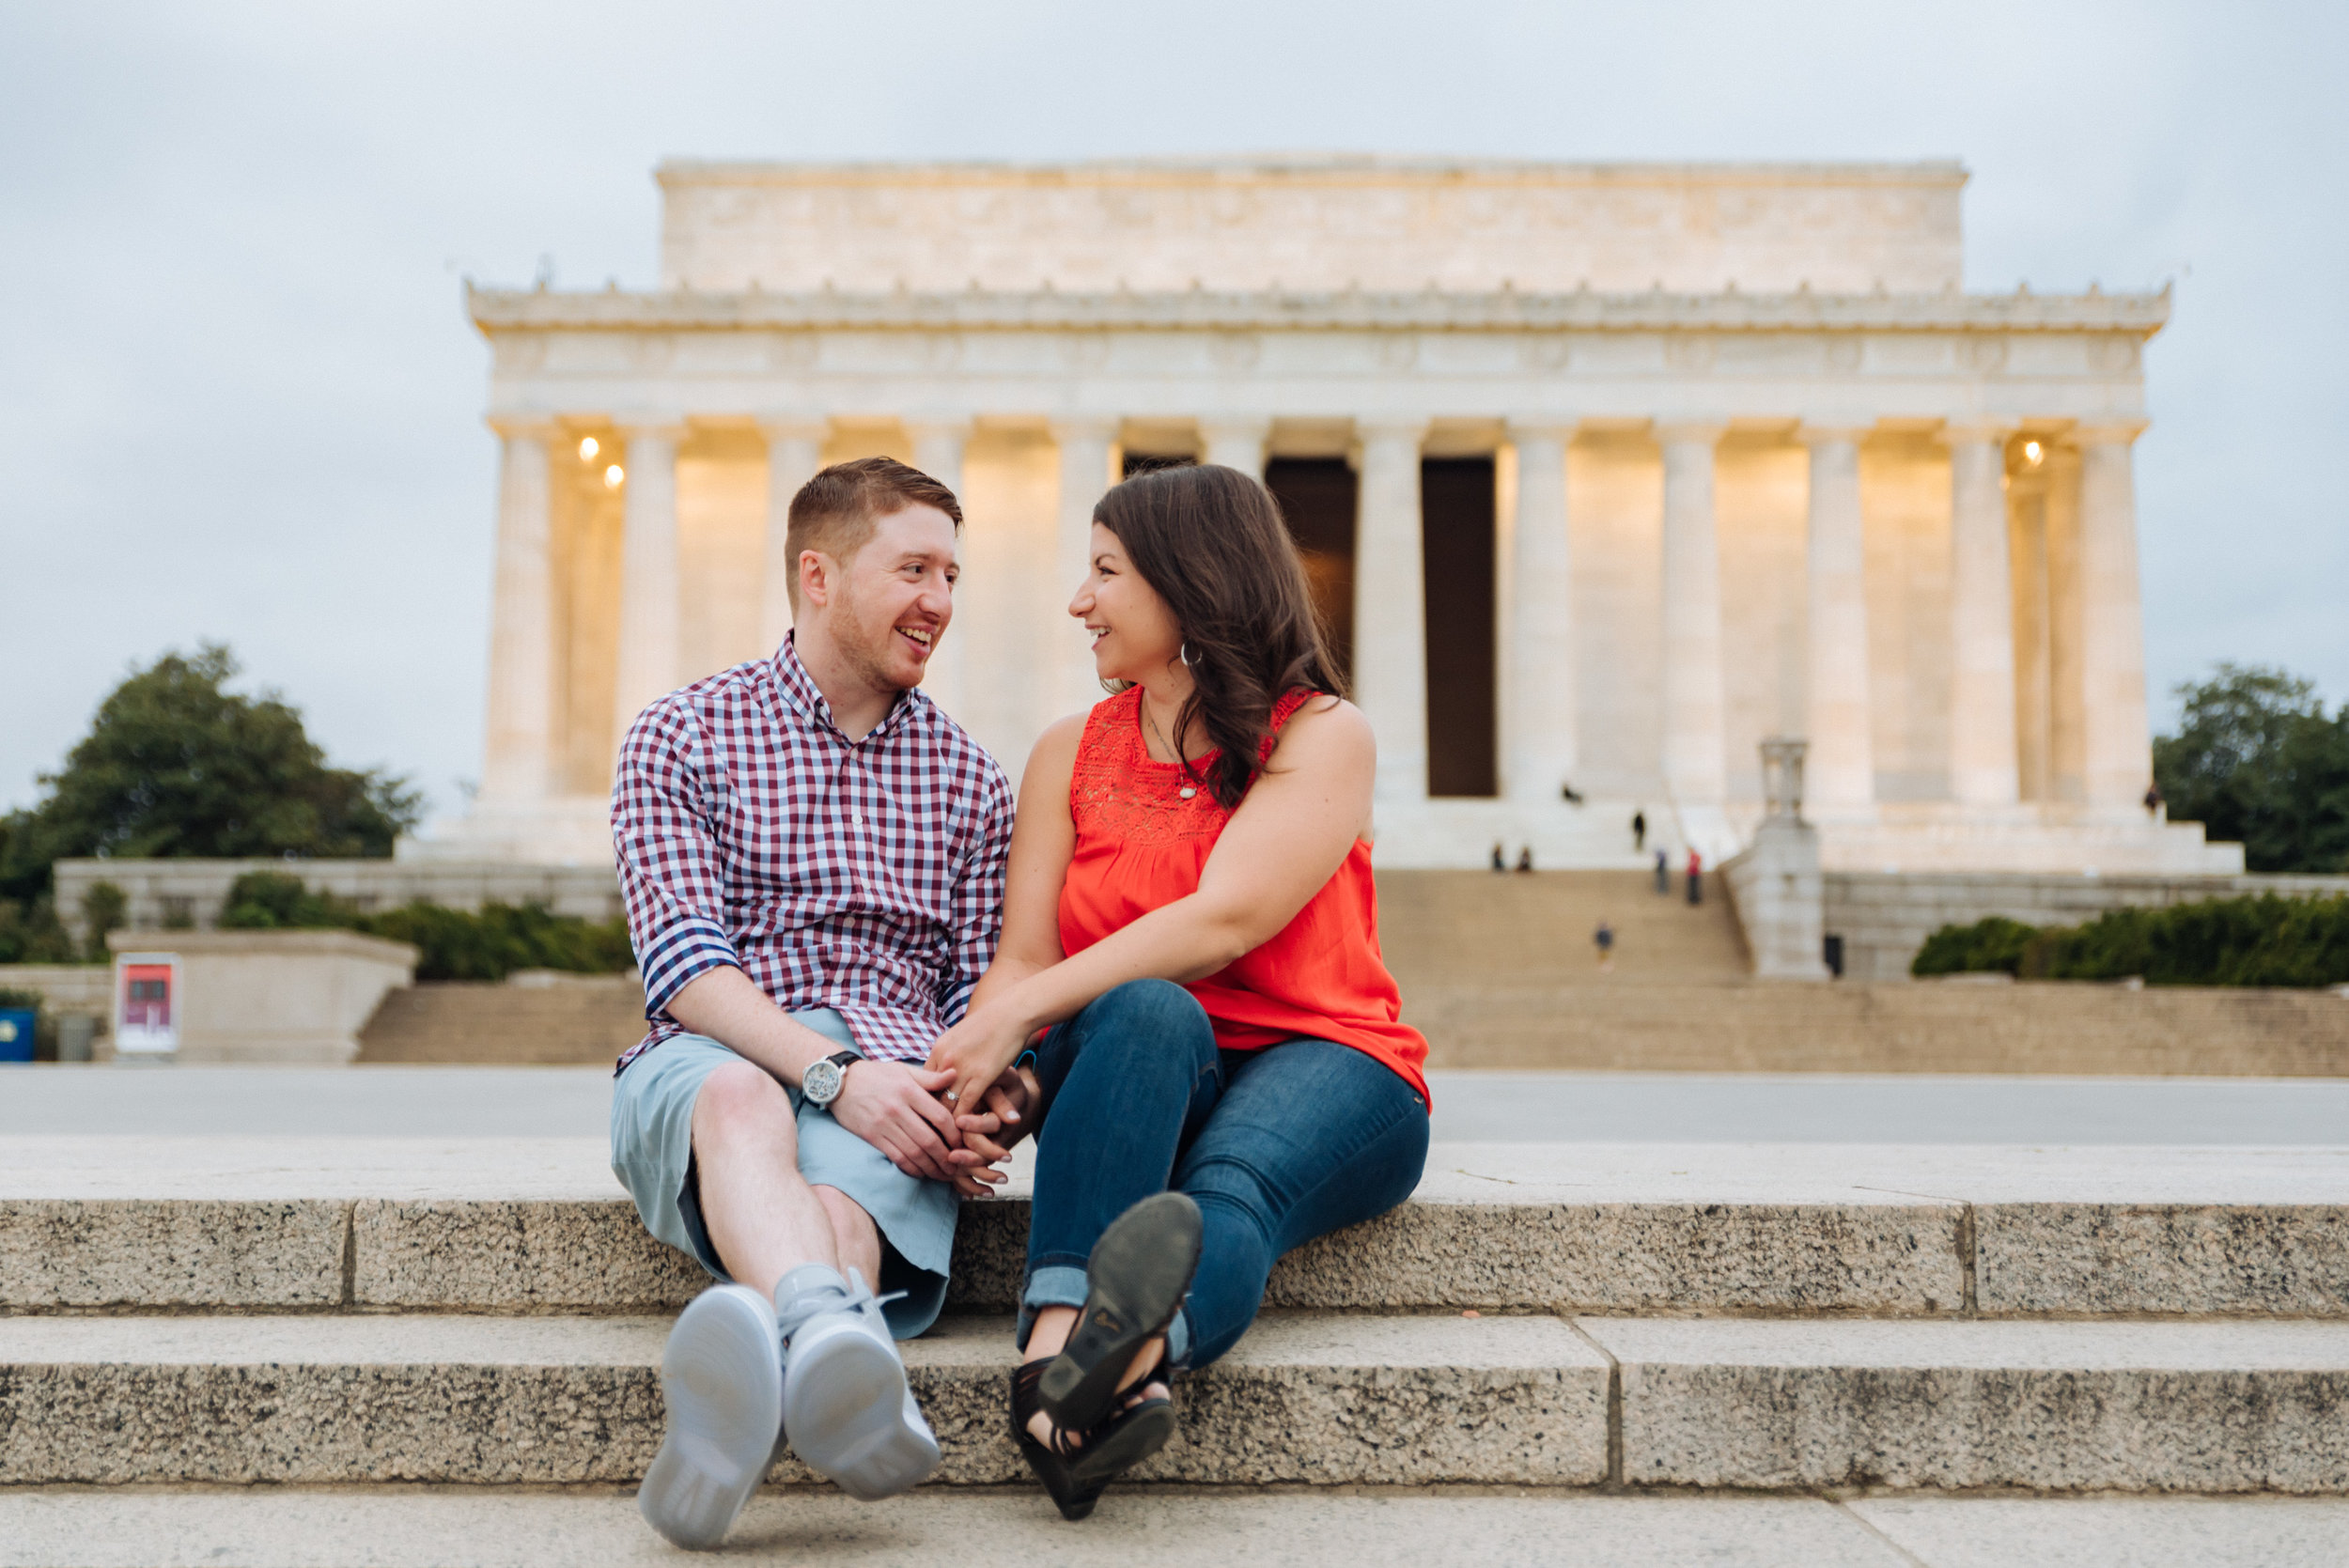 ATHENS IS WHERE OUR STORY BEGINS….  Lauren and Ryan met in September 2007 while attending the one and only Ohio University in Athens. Exactly where did they meet? As surprising as it may seem, Lauren and Ryan met in class.  On a Friday afternoon, Lauren and Ryan were both attending their sociology class. On this particular day, students in the class were going to have a debate. Lauren and Ryan only observed, but, unbeknownst to each other, both felt strongly about what was being said. Lauren, being the introvert she is, remained quiet in her seat about her reaction to the debate. Ryan, on the other hand, being outspoken and the extrovert he is, raised his hand, stood up in the lecture hall, and volunteered a piece of his mind. It was enough to make Lauren notice, so she turned around from her nerdy second-row seat (Ryan sat in the back row of the lecture hall, of course) to see who this person was. And what did Lauren see? She saw someone with moppy red hair, skater shoes, gym shorts, and a hoodie… but about as short in stature as Lauren herself. Who WAS this guy? Lauren had to find out.  Class finally ended, and Lauren hung back a little so she would pass ways with this interesting (and loud…) red-headed guy. It was at this point Lauren and Ryan met, and struck up a conversation about what they just saw in class. They ended up carrying the conversation all of the way back to OU's Front Four dorms, where they both lived.  Is this the part where Ryan asked for Lauren's number, or vice versa? Actually, no. Lauren and Ryan didn't talk or see each other again... until a few months later.